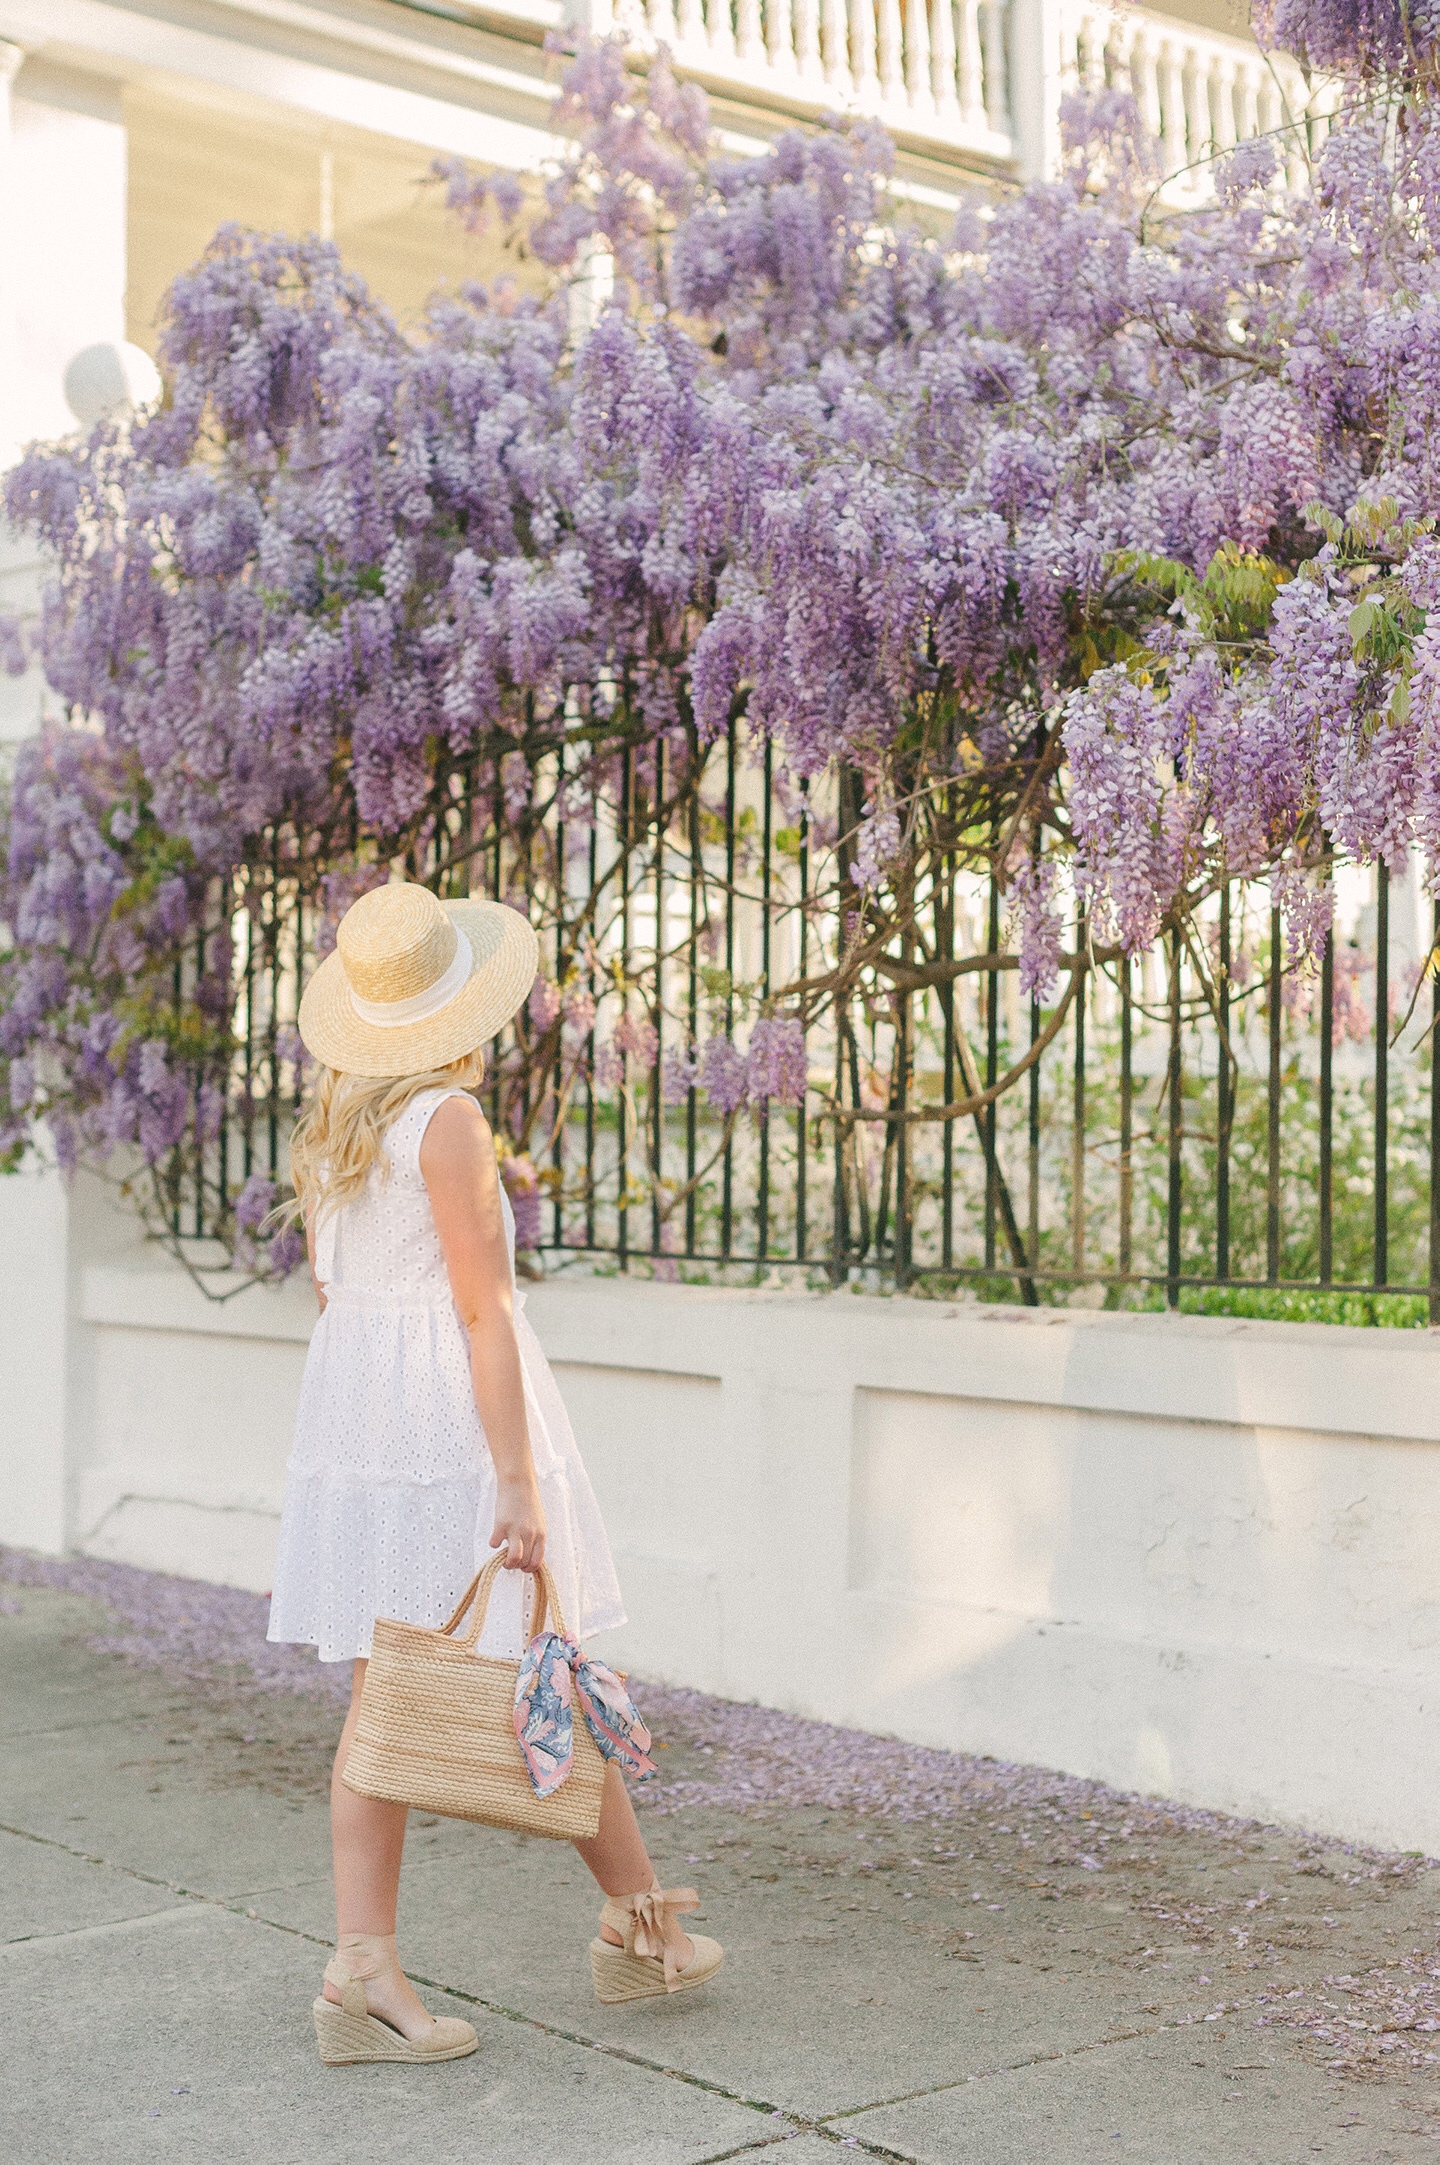 White Eyelet Dress + Charleston Wisteria